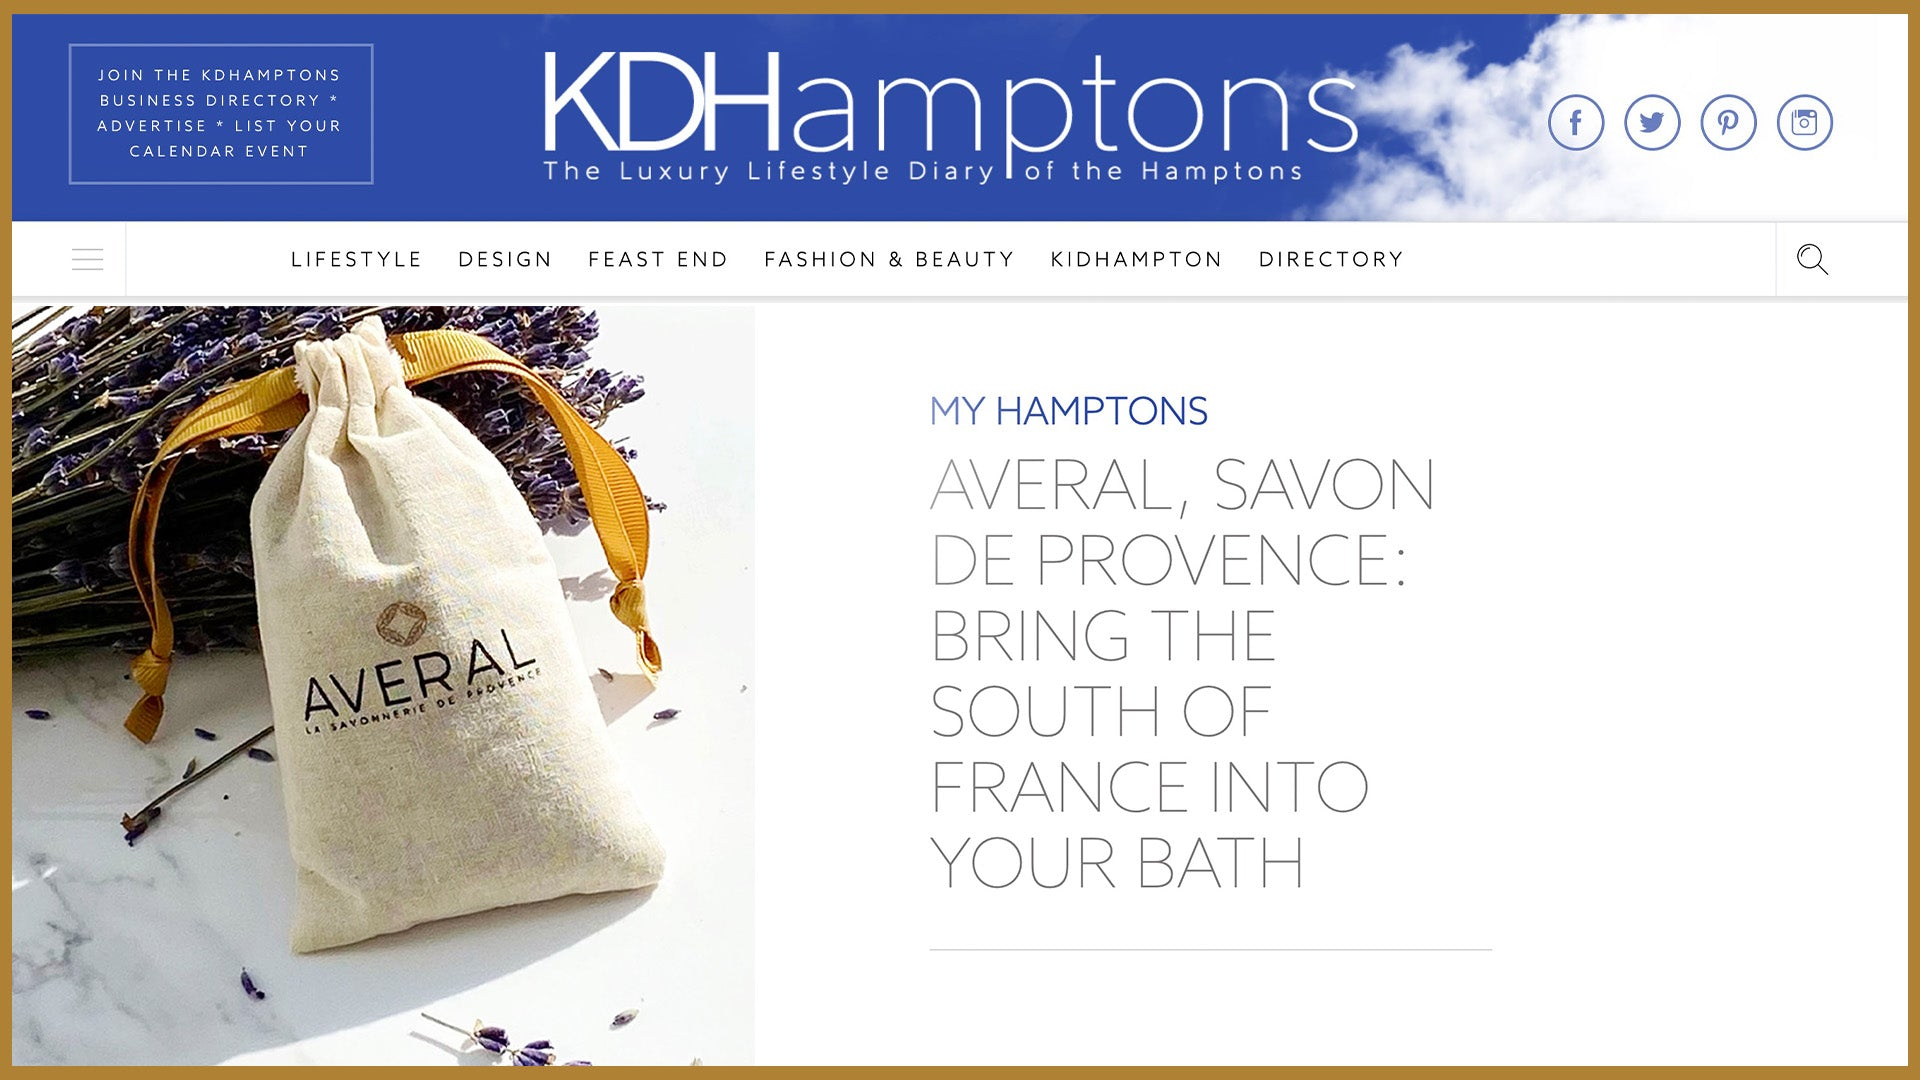 KD Hamptons loves our soaps from France to your Bath: Averal Provence